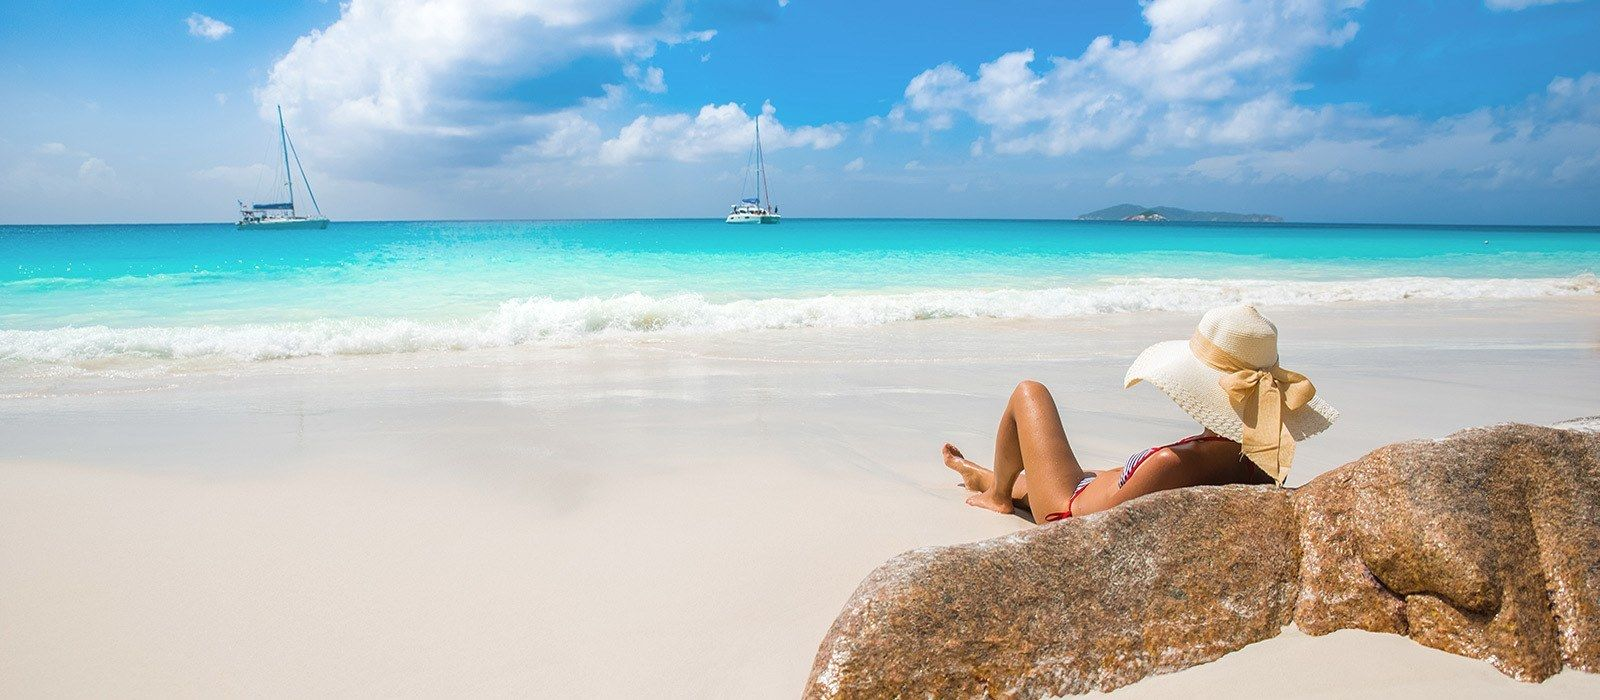 Exclusive Travel Tips For Your Destination Praslin Island